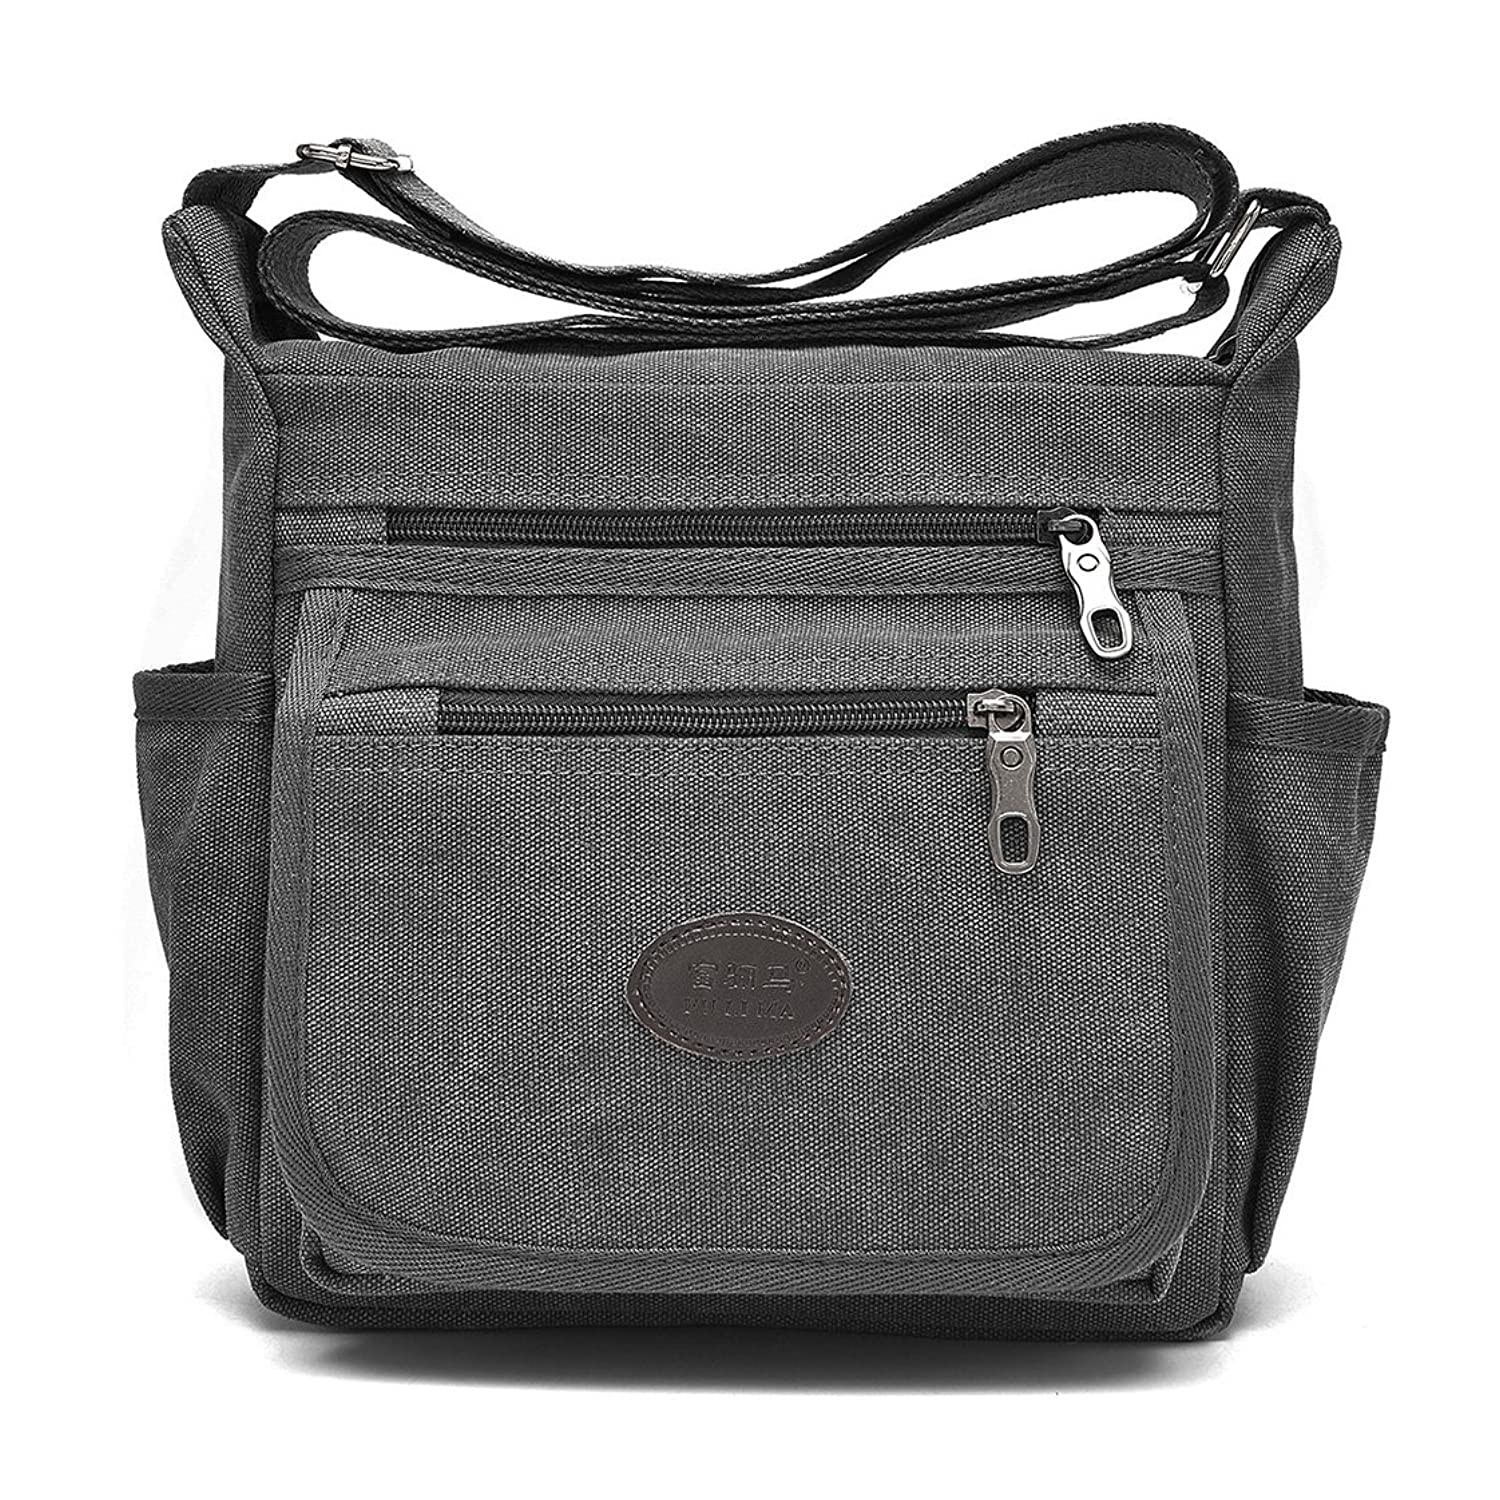 best selling messenger bags bags more